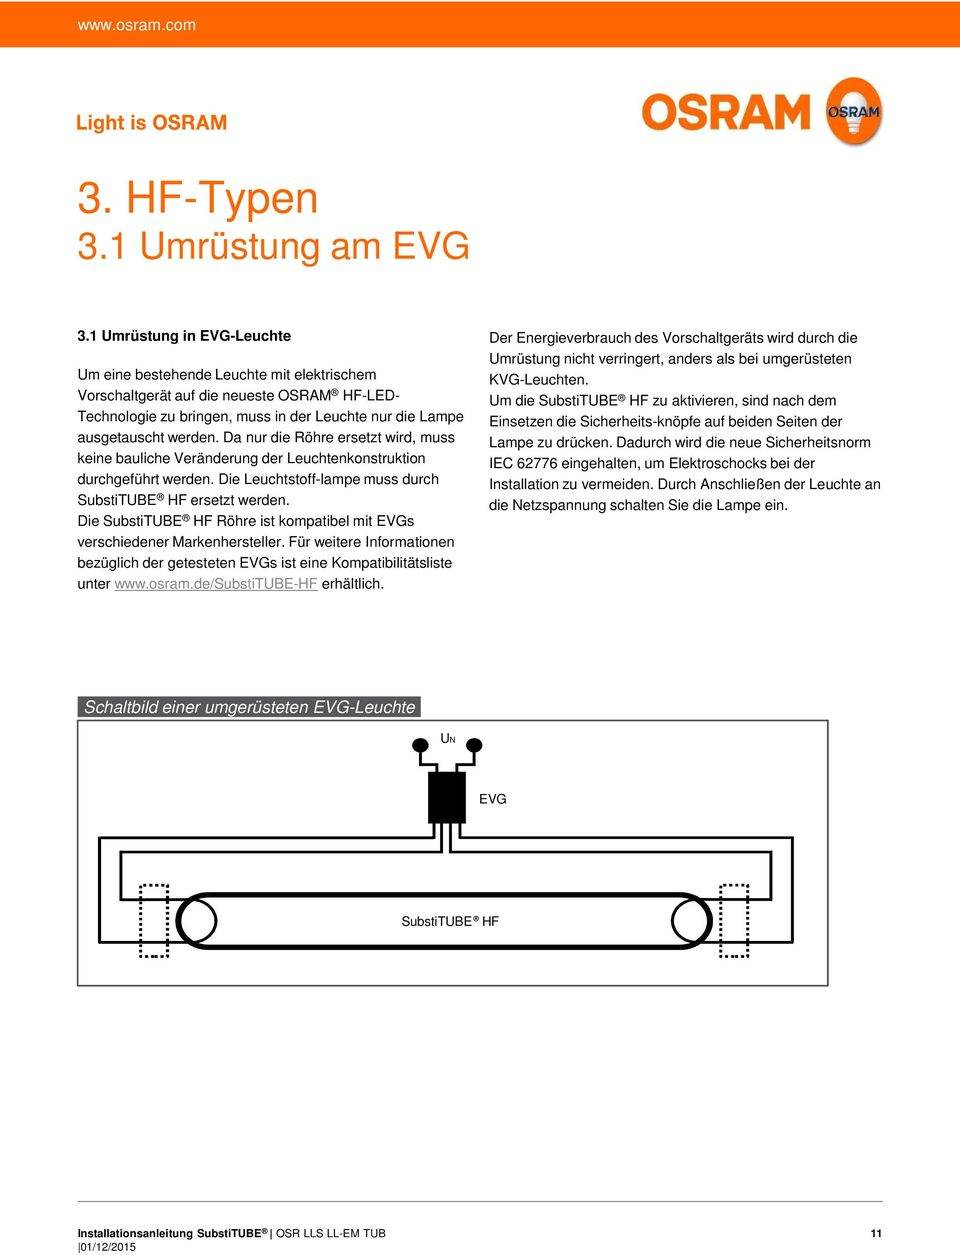 Substitube Hf Und Em Typen Pdf Free Download